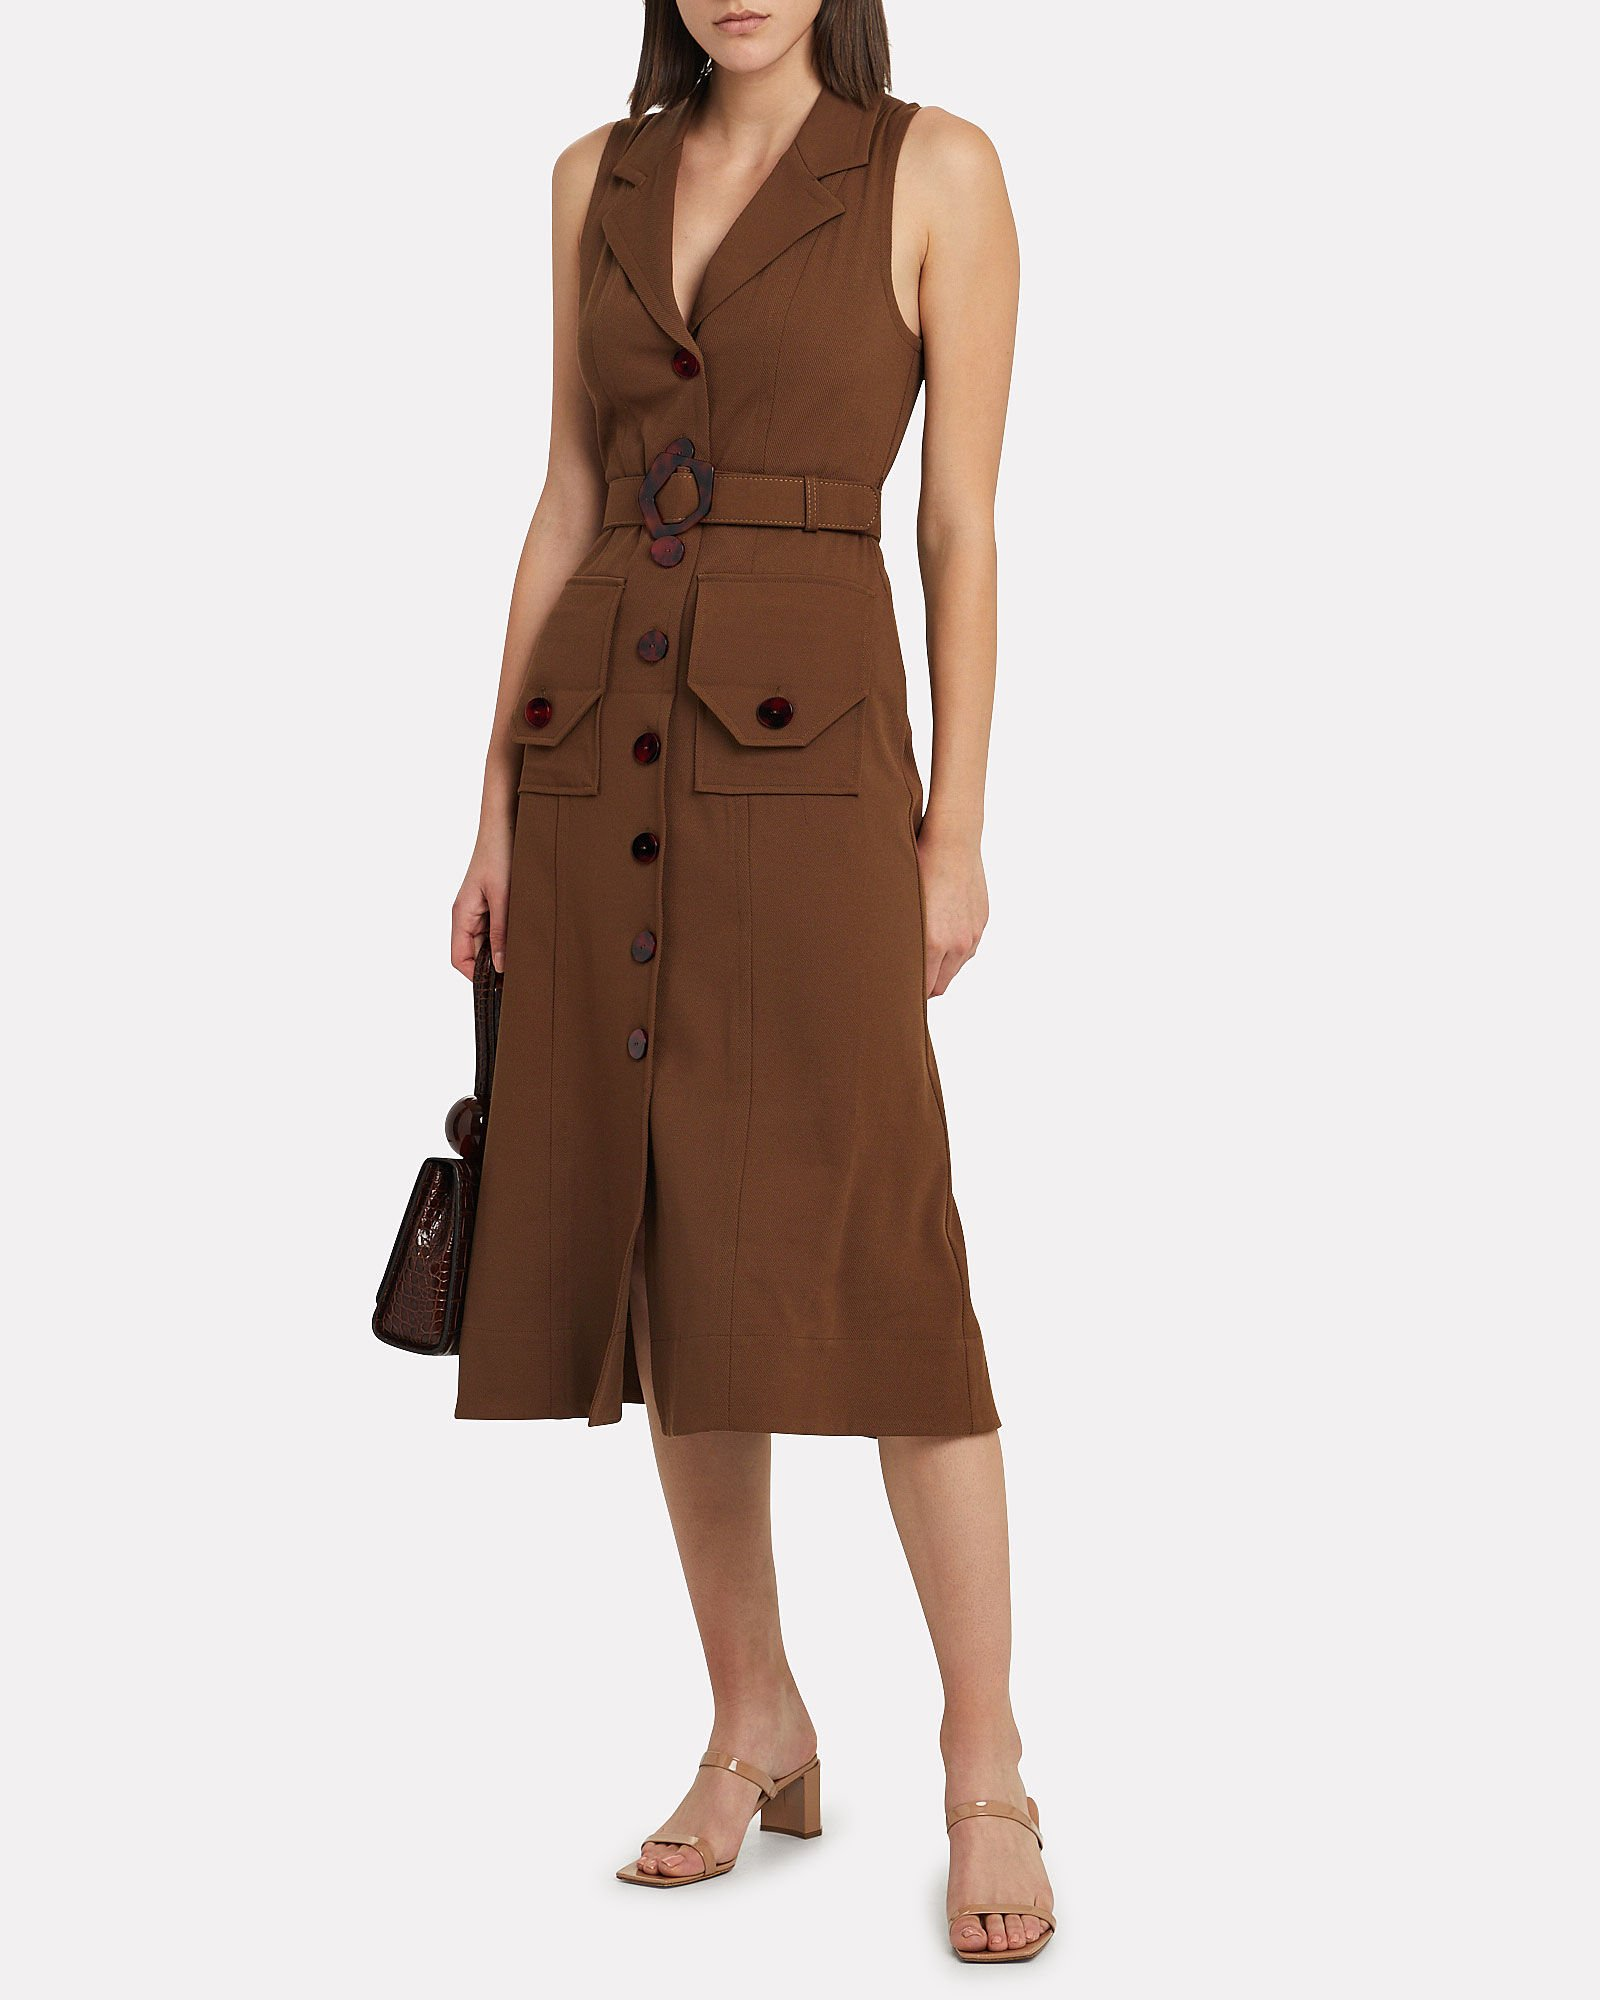 Silk Twill Button-Up Dress, OLIVE/ARMY, hi-res